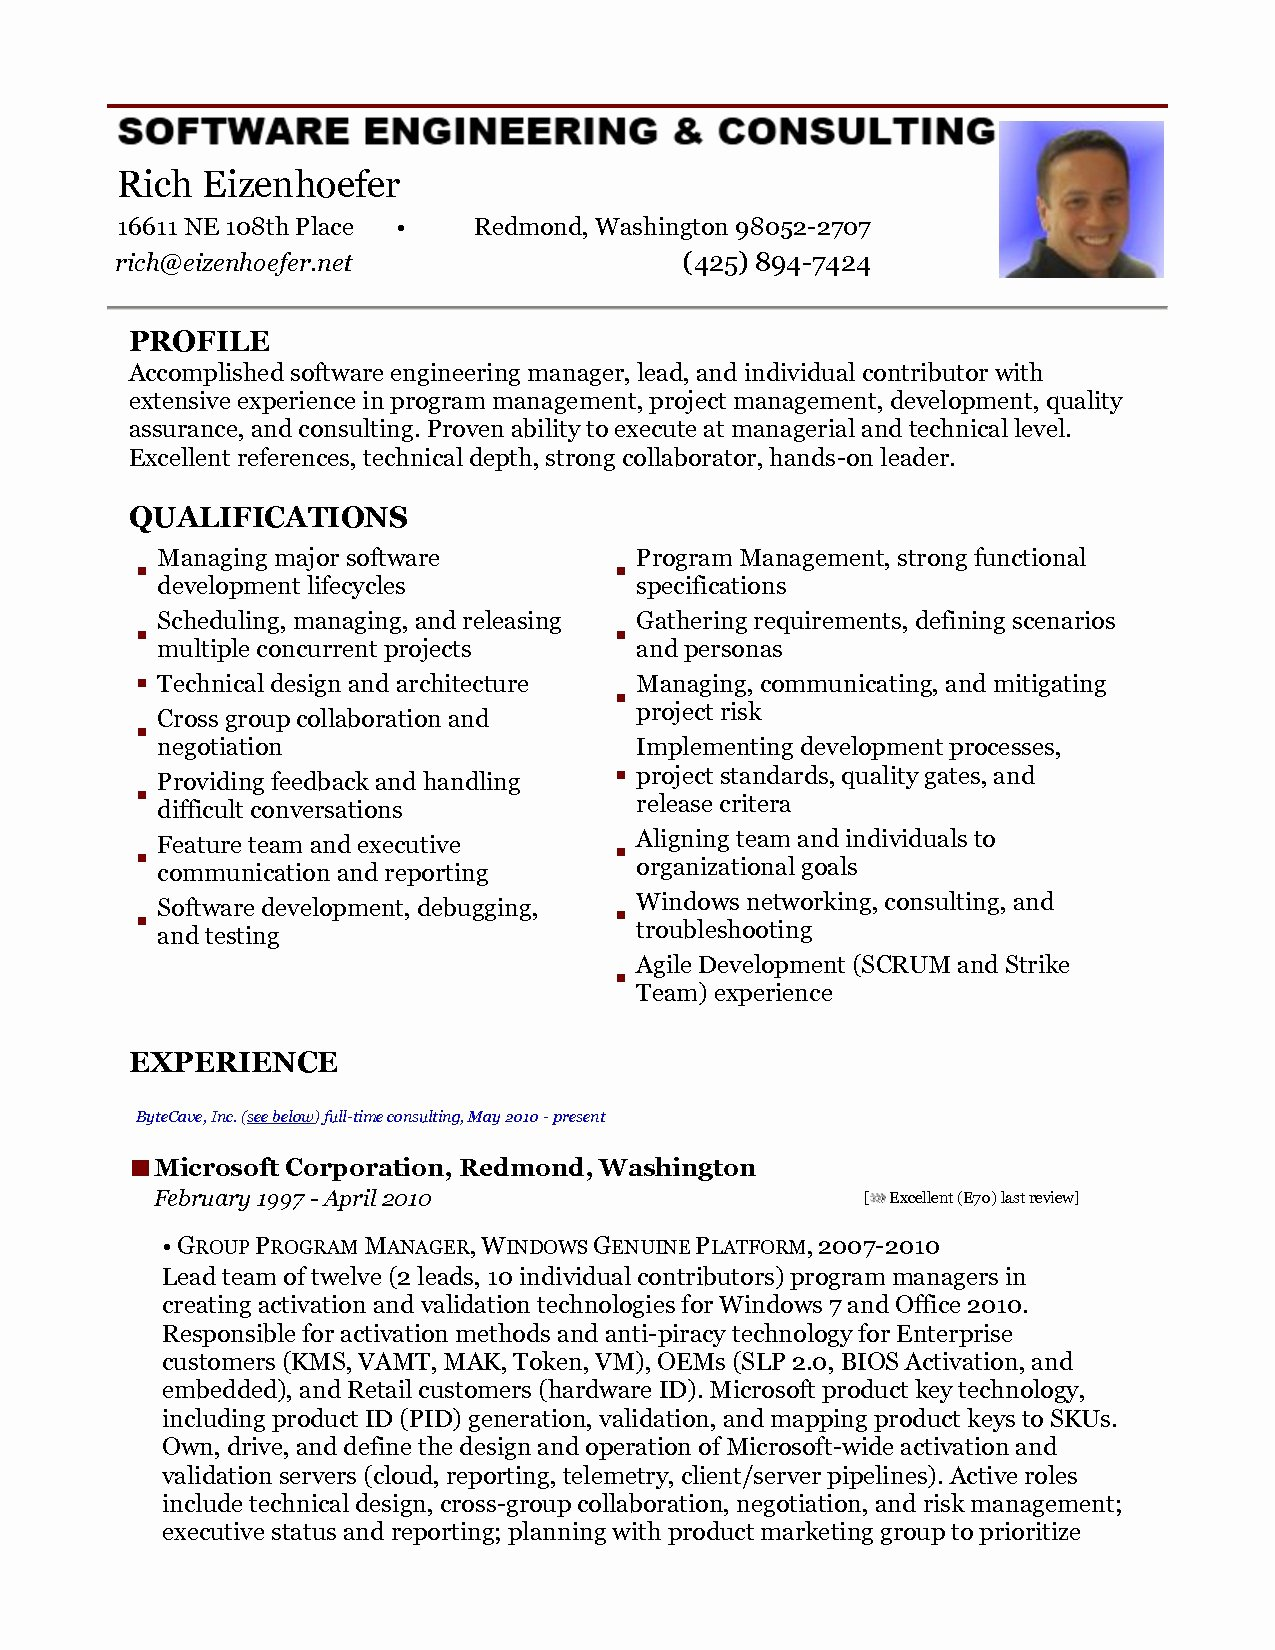 Embedded software Engineer Resume Resume Ideas